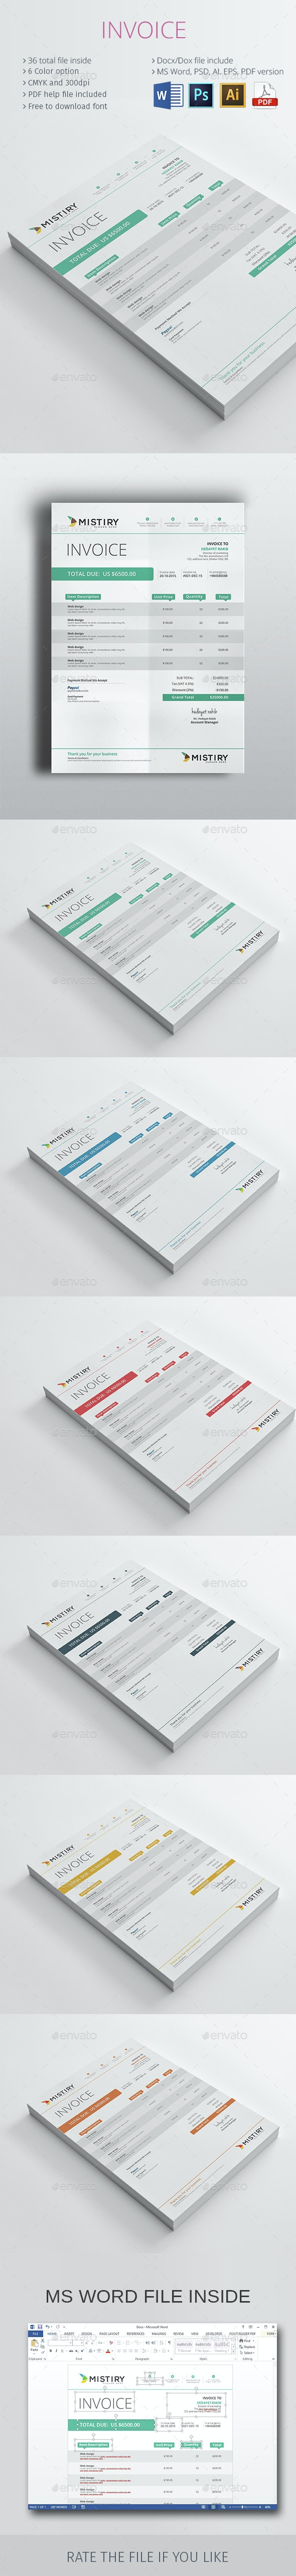 The Invoice - Proposals & Invoices Stationery